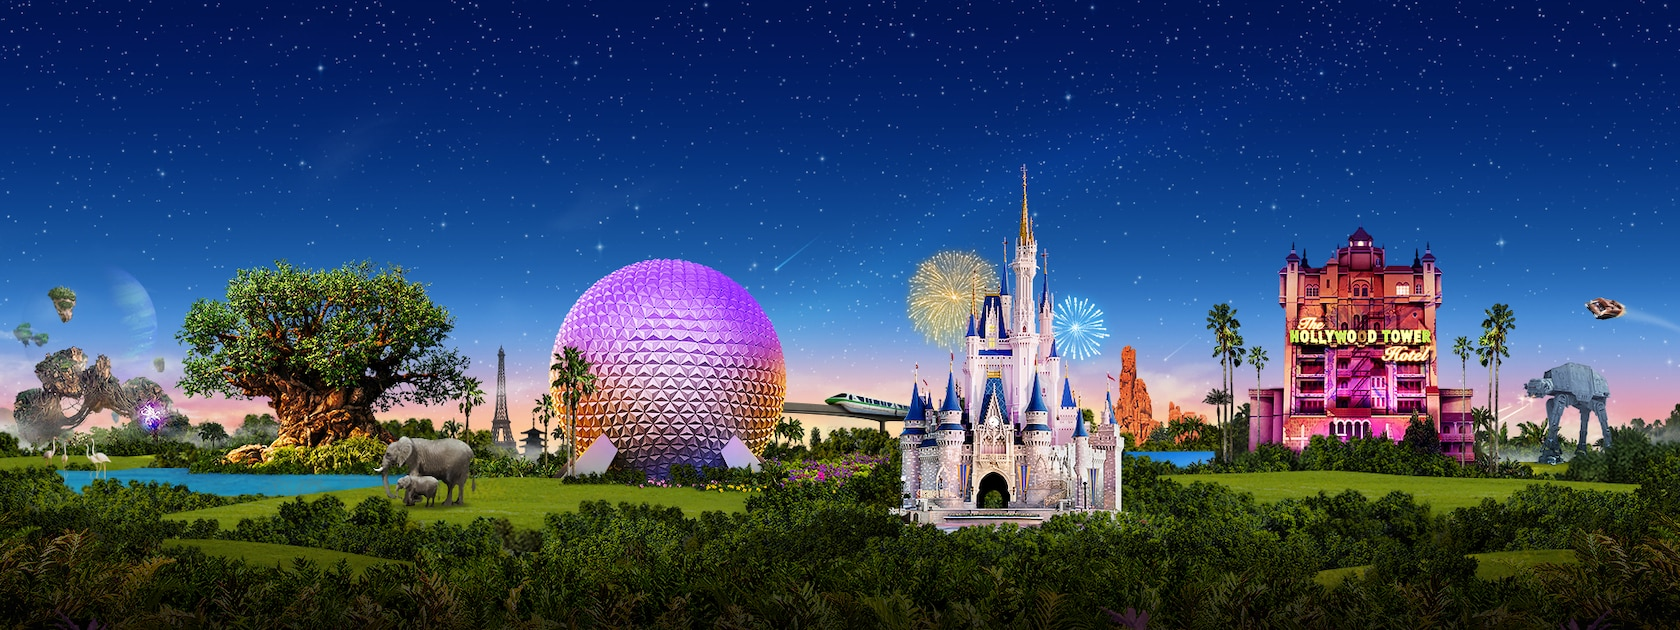 Walt Disney World Trip Cost: A Breakdown of Expenses to Help.